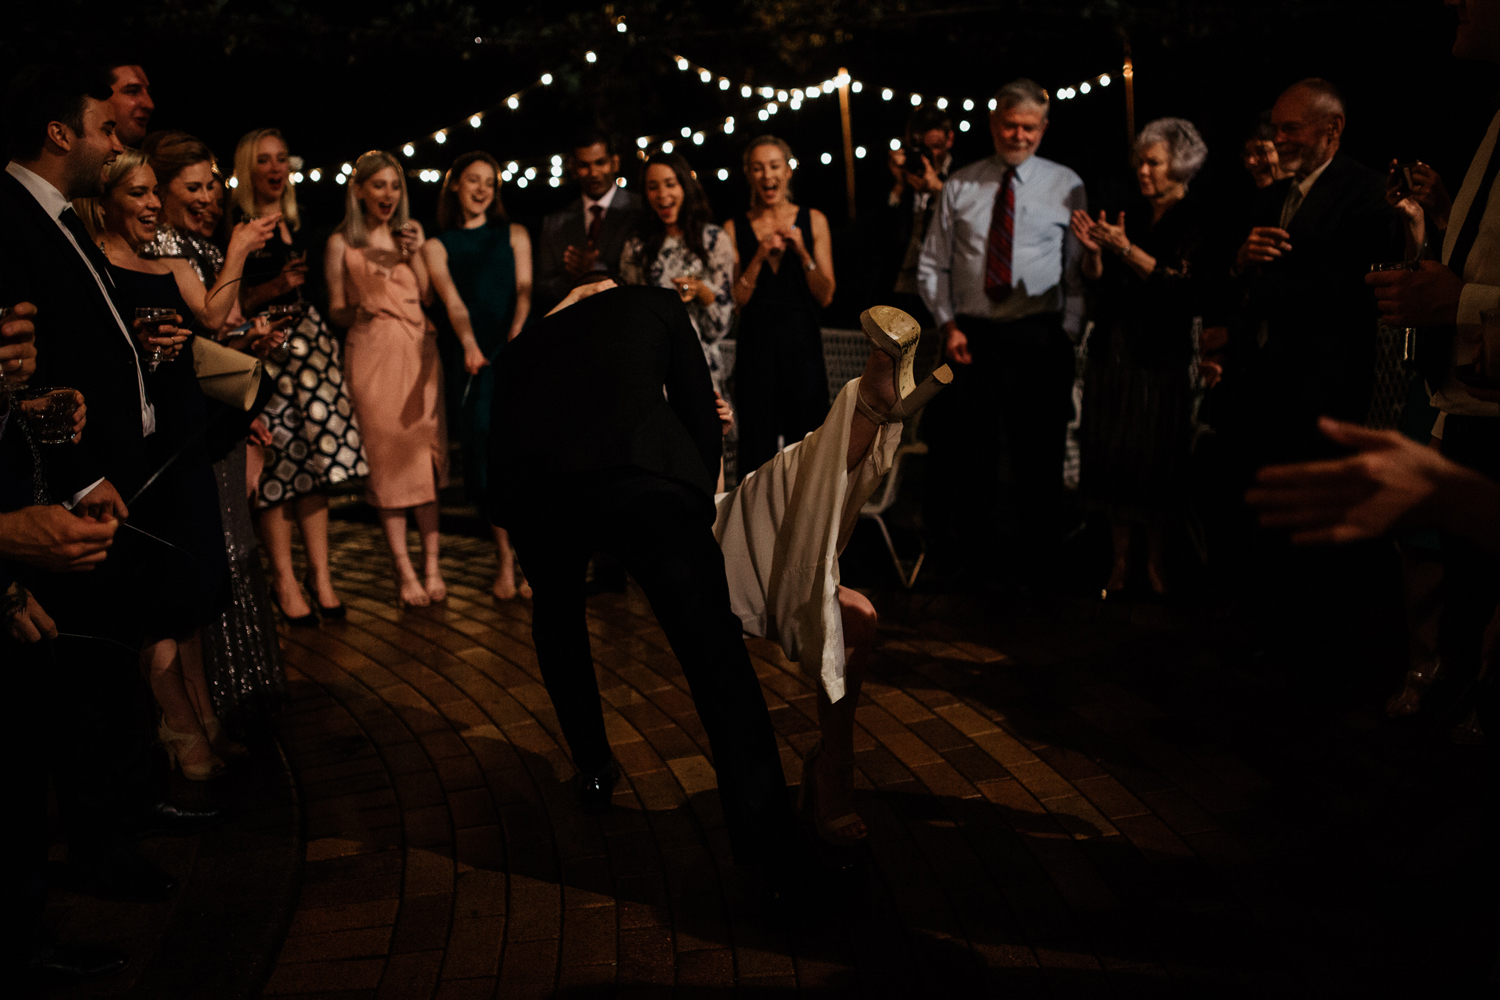 566-byron_bay_wedding_photographer.jpg